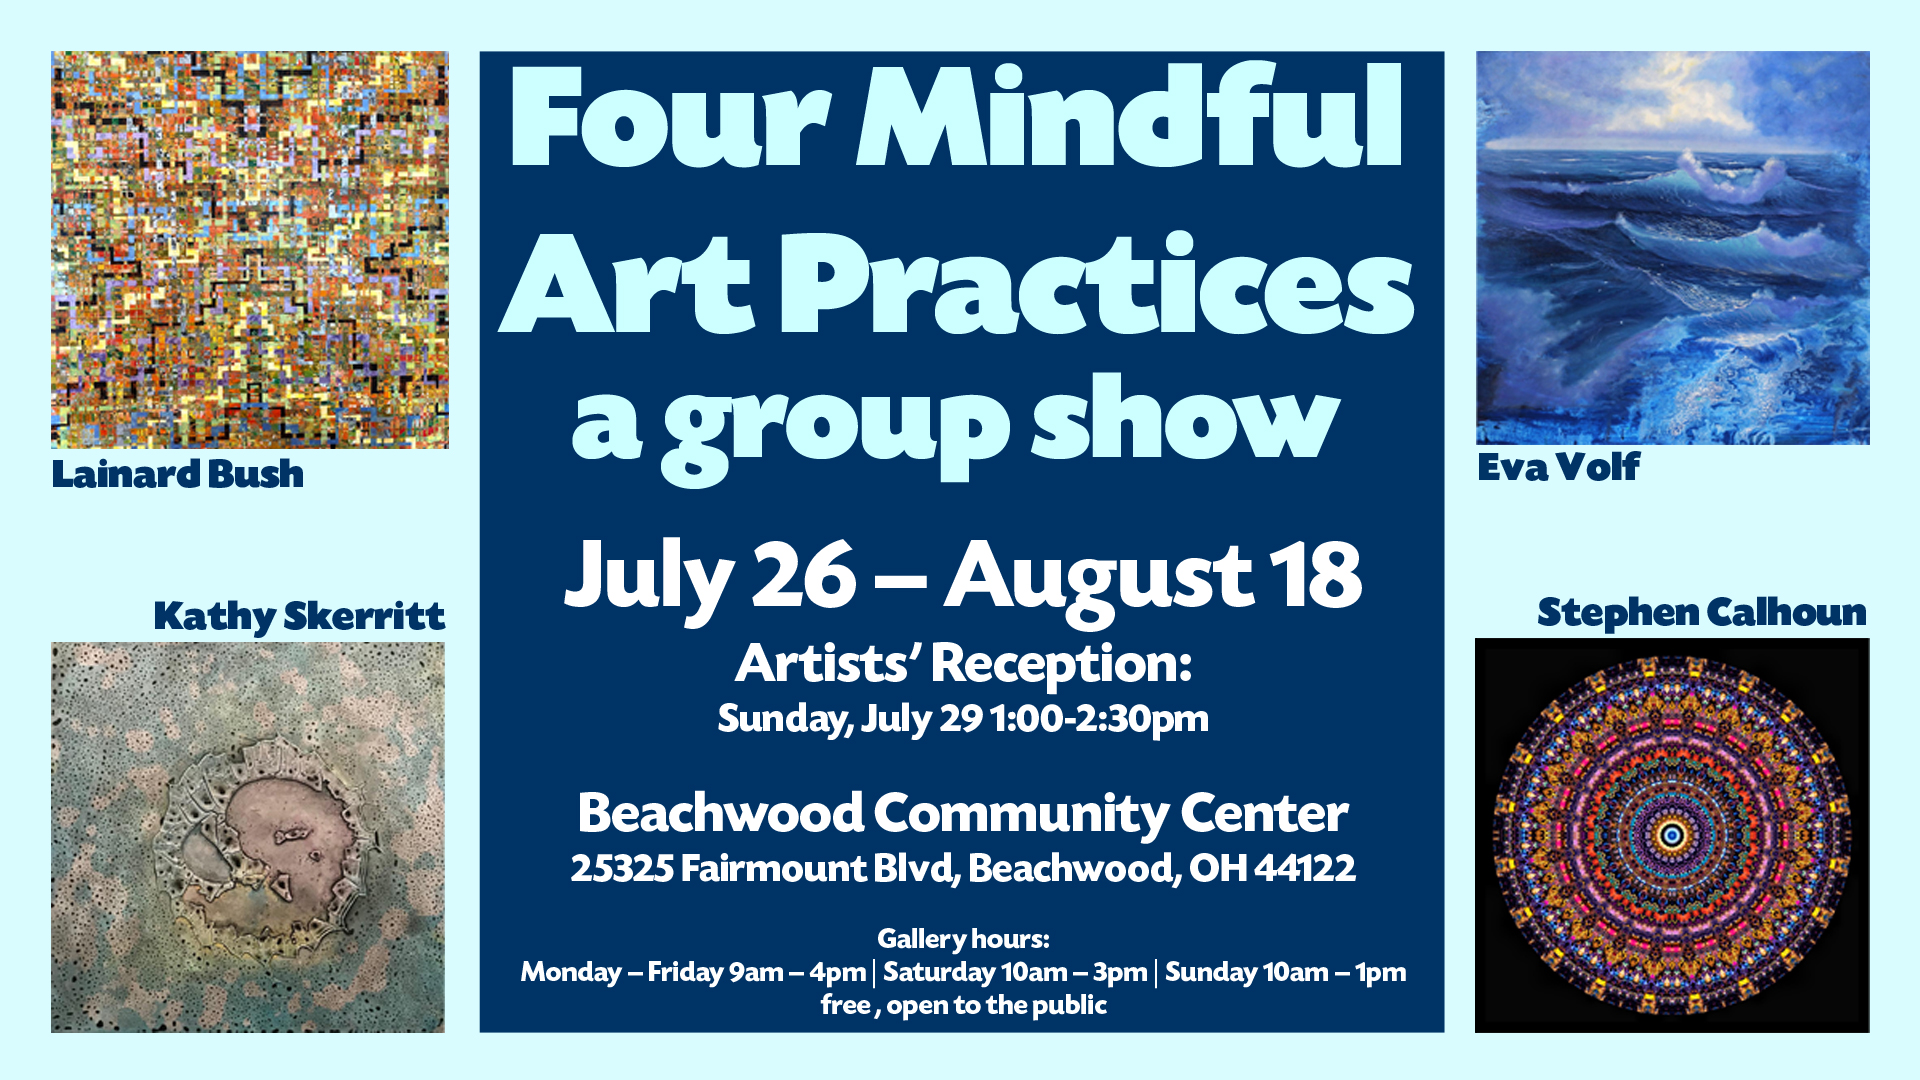 Four Mindful Art Practices